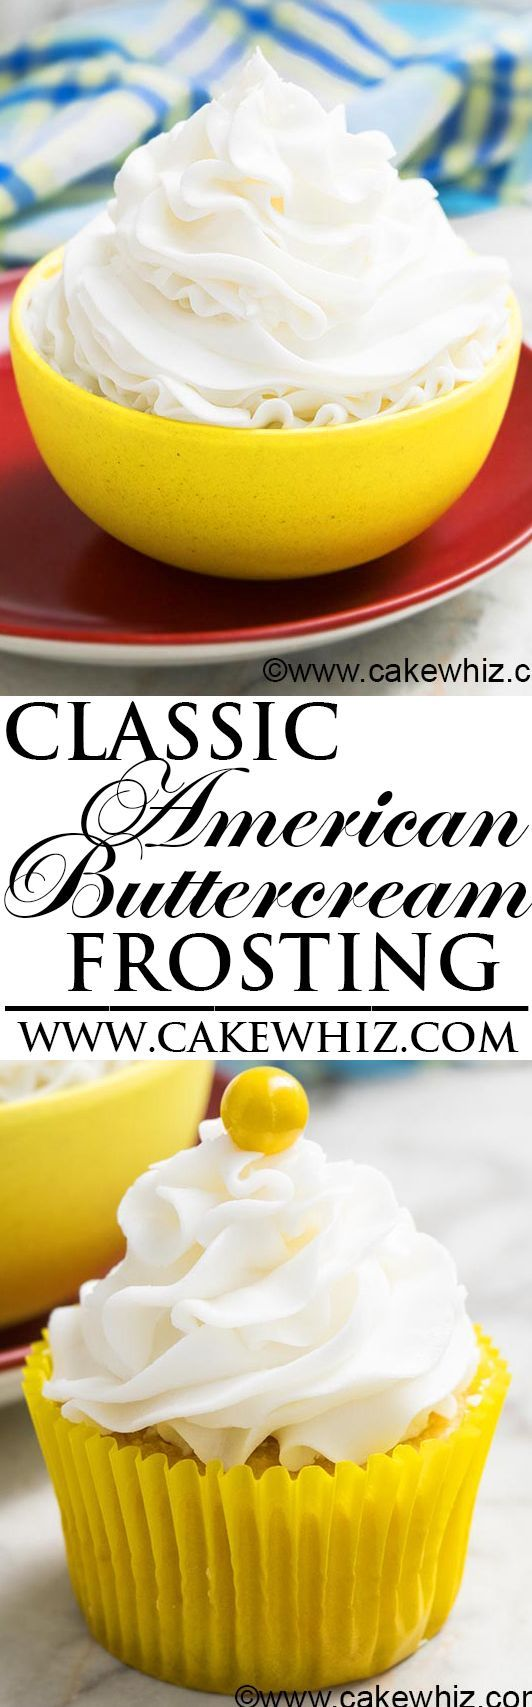 This easy classic AMERICAN BUTTERCREAM FROSTING is made with just 4 ingredients. It's firm, holds its shape and is great for piping and cake decorating. Lots of tips included on how to make and use this perfect white buttercream icing recipe. From cakewhiz.com #cupcakefrostingtips